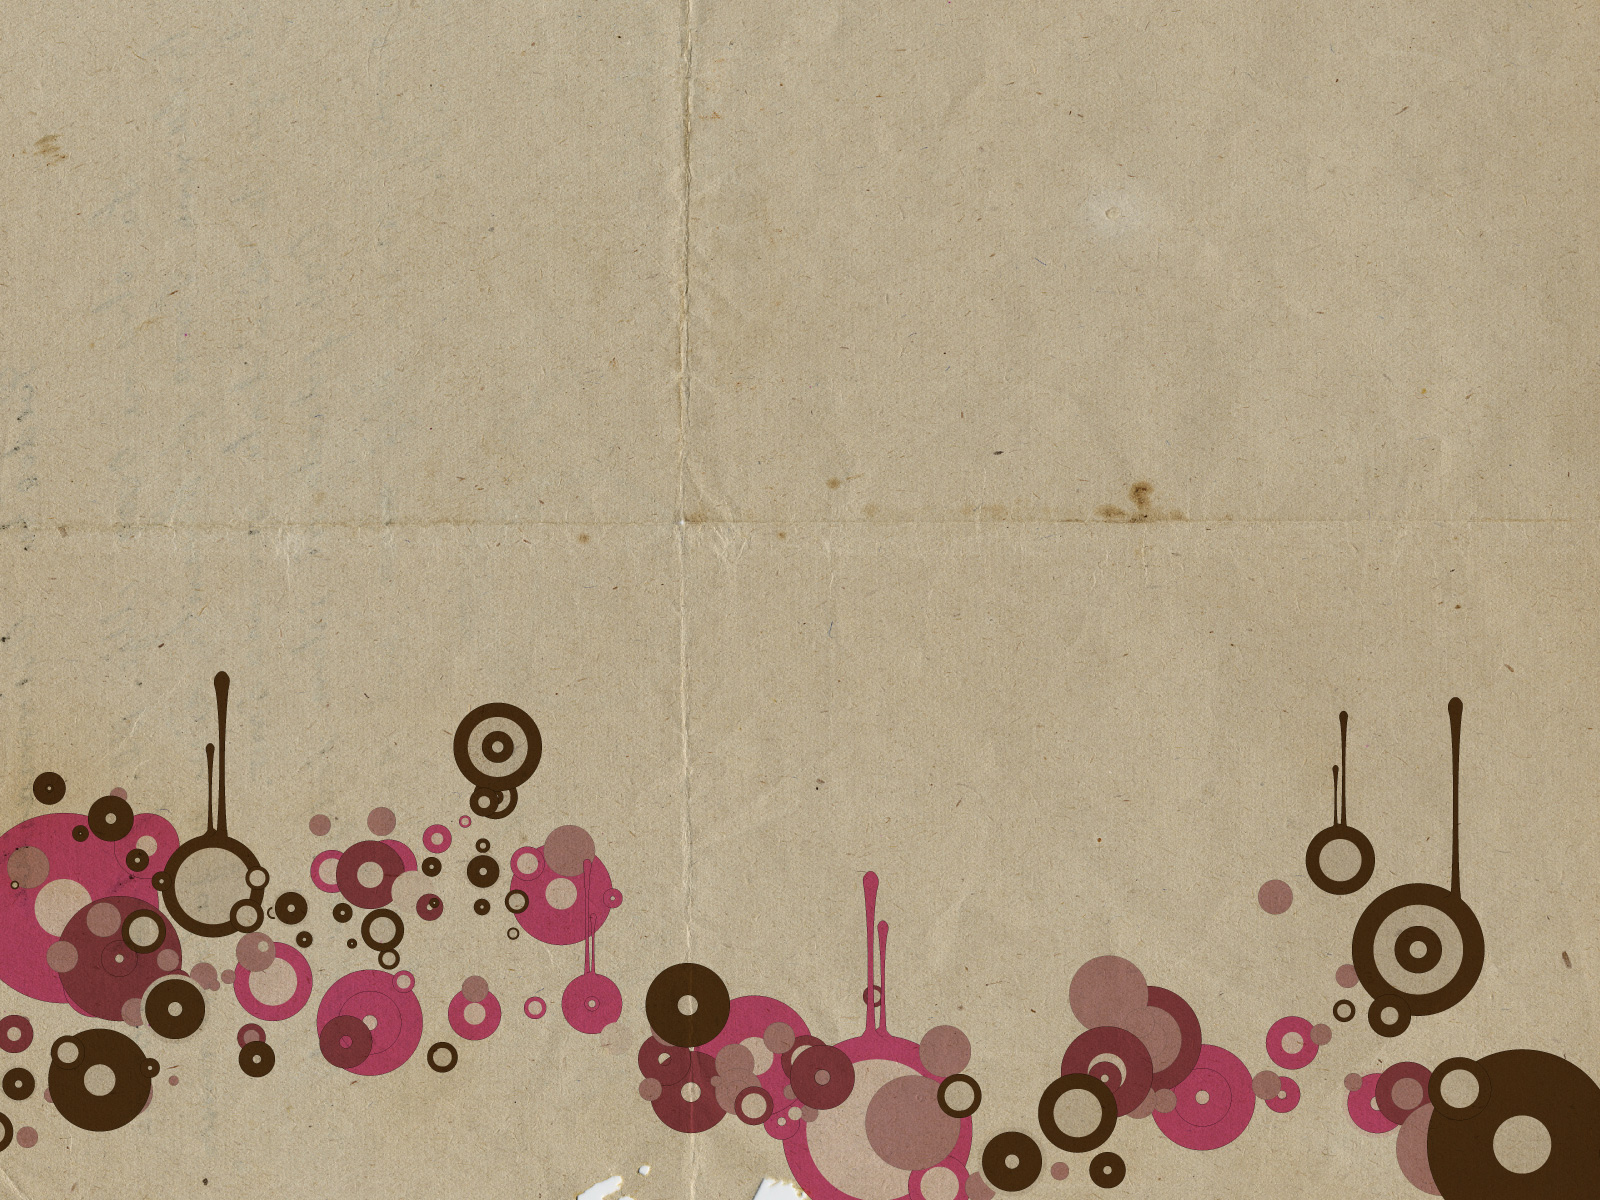 Paper Vintage Circles PPT Backgrounds